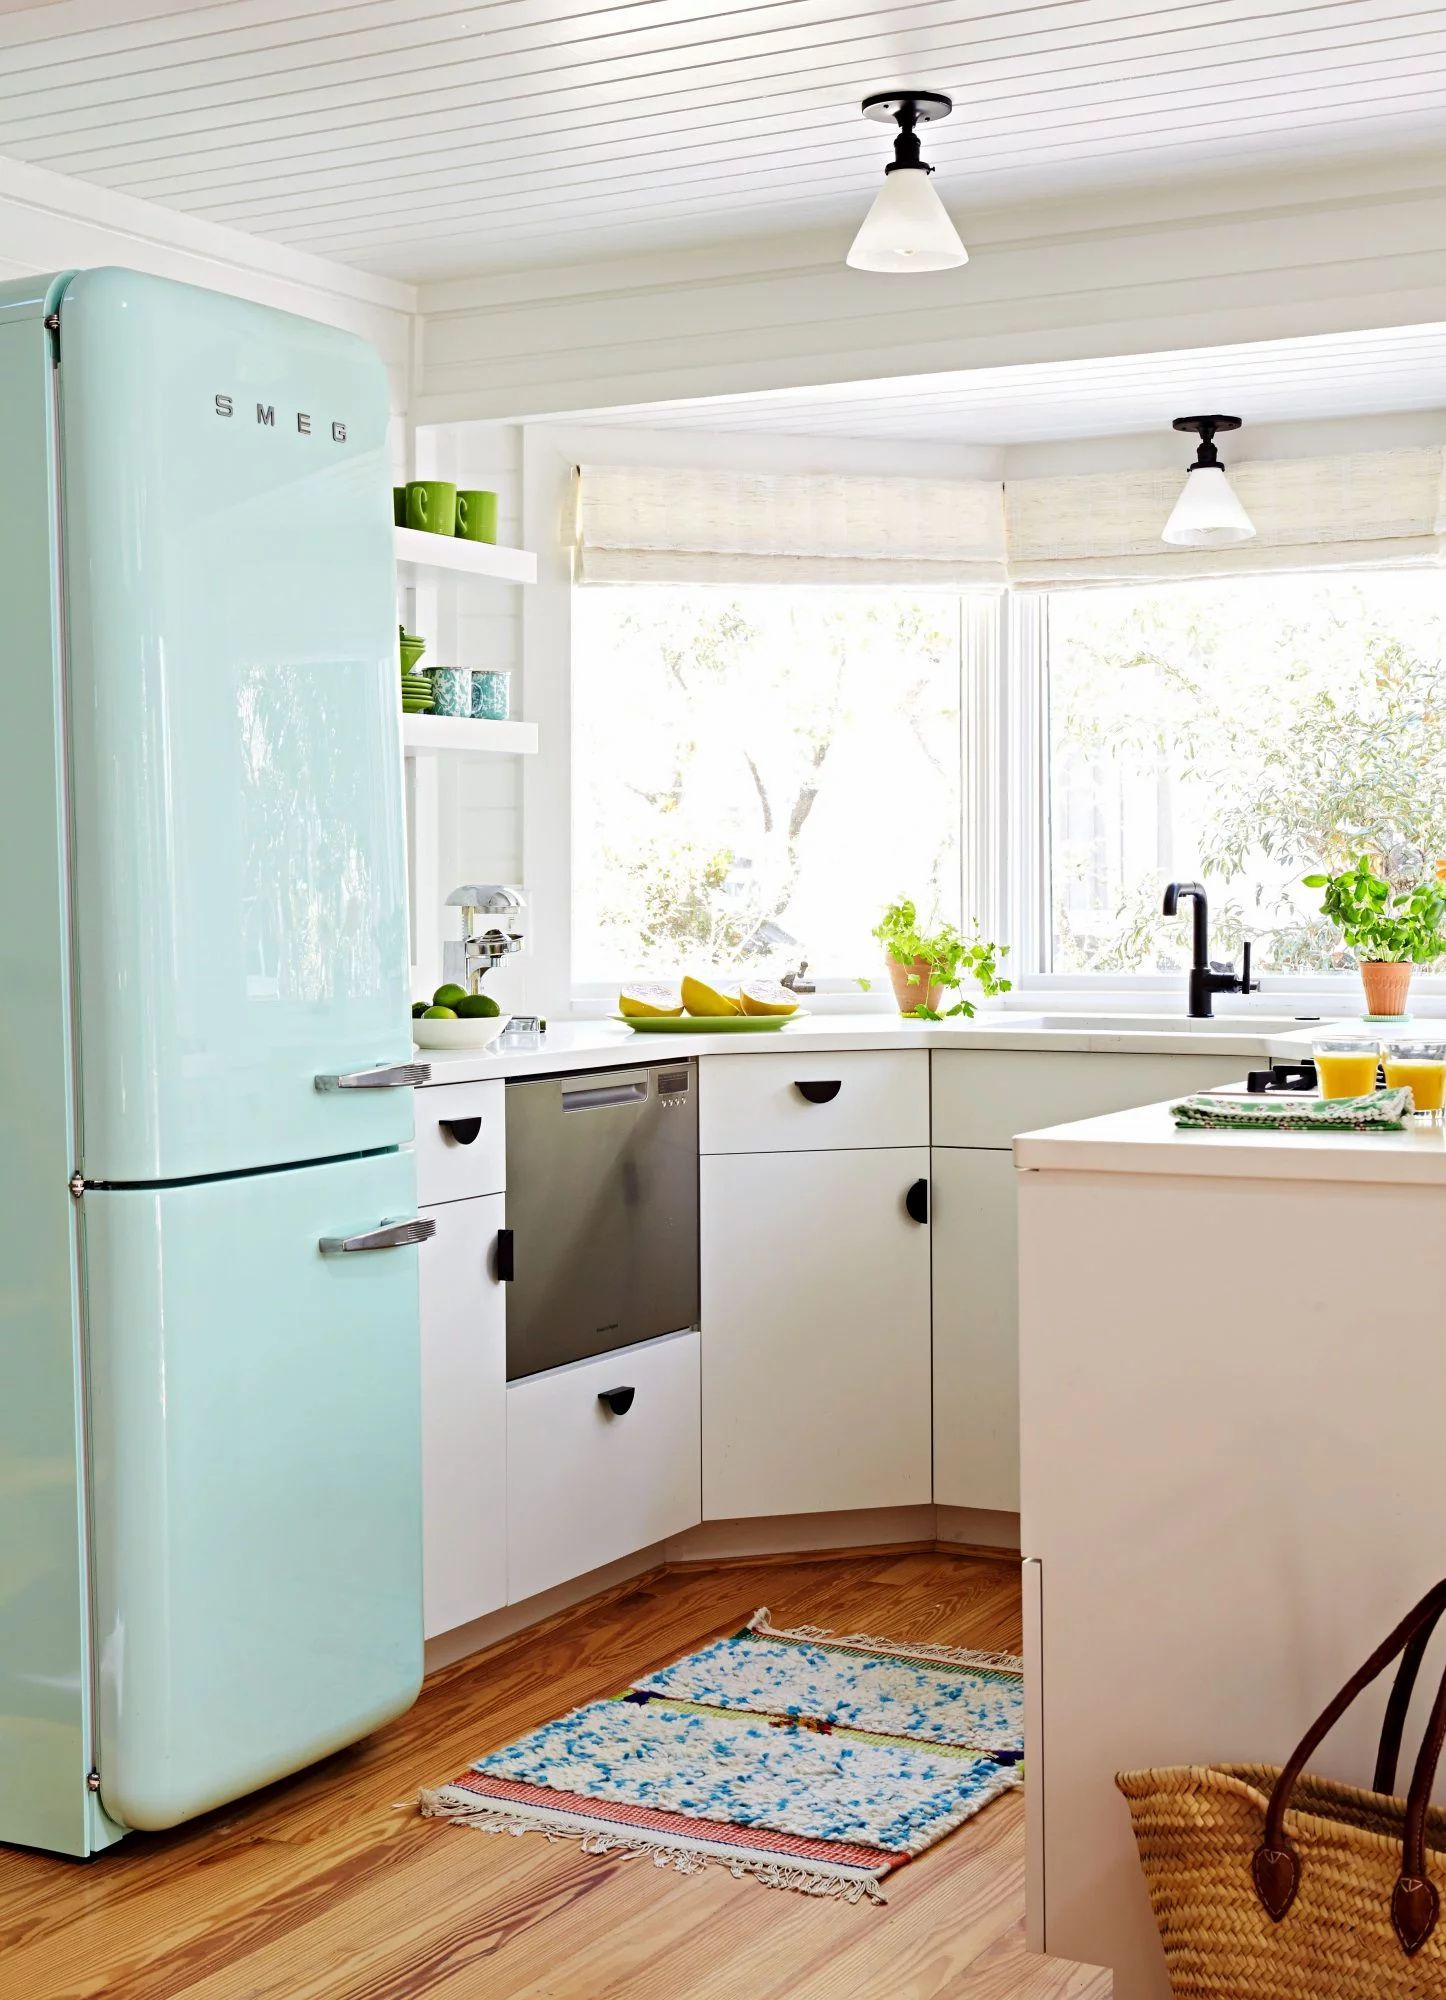 This 600 Square Foot Florida Beach Cottage Is A Tiny Slice Of Paradise In 2020 Small Cottage Kitchen Kitchen Design Cottage Kitchens